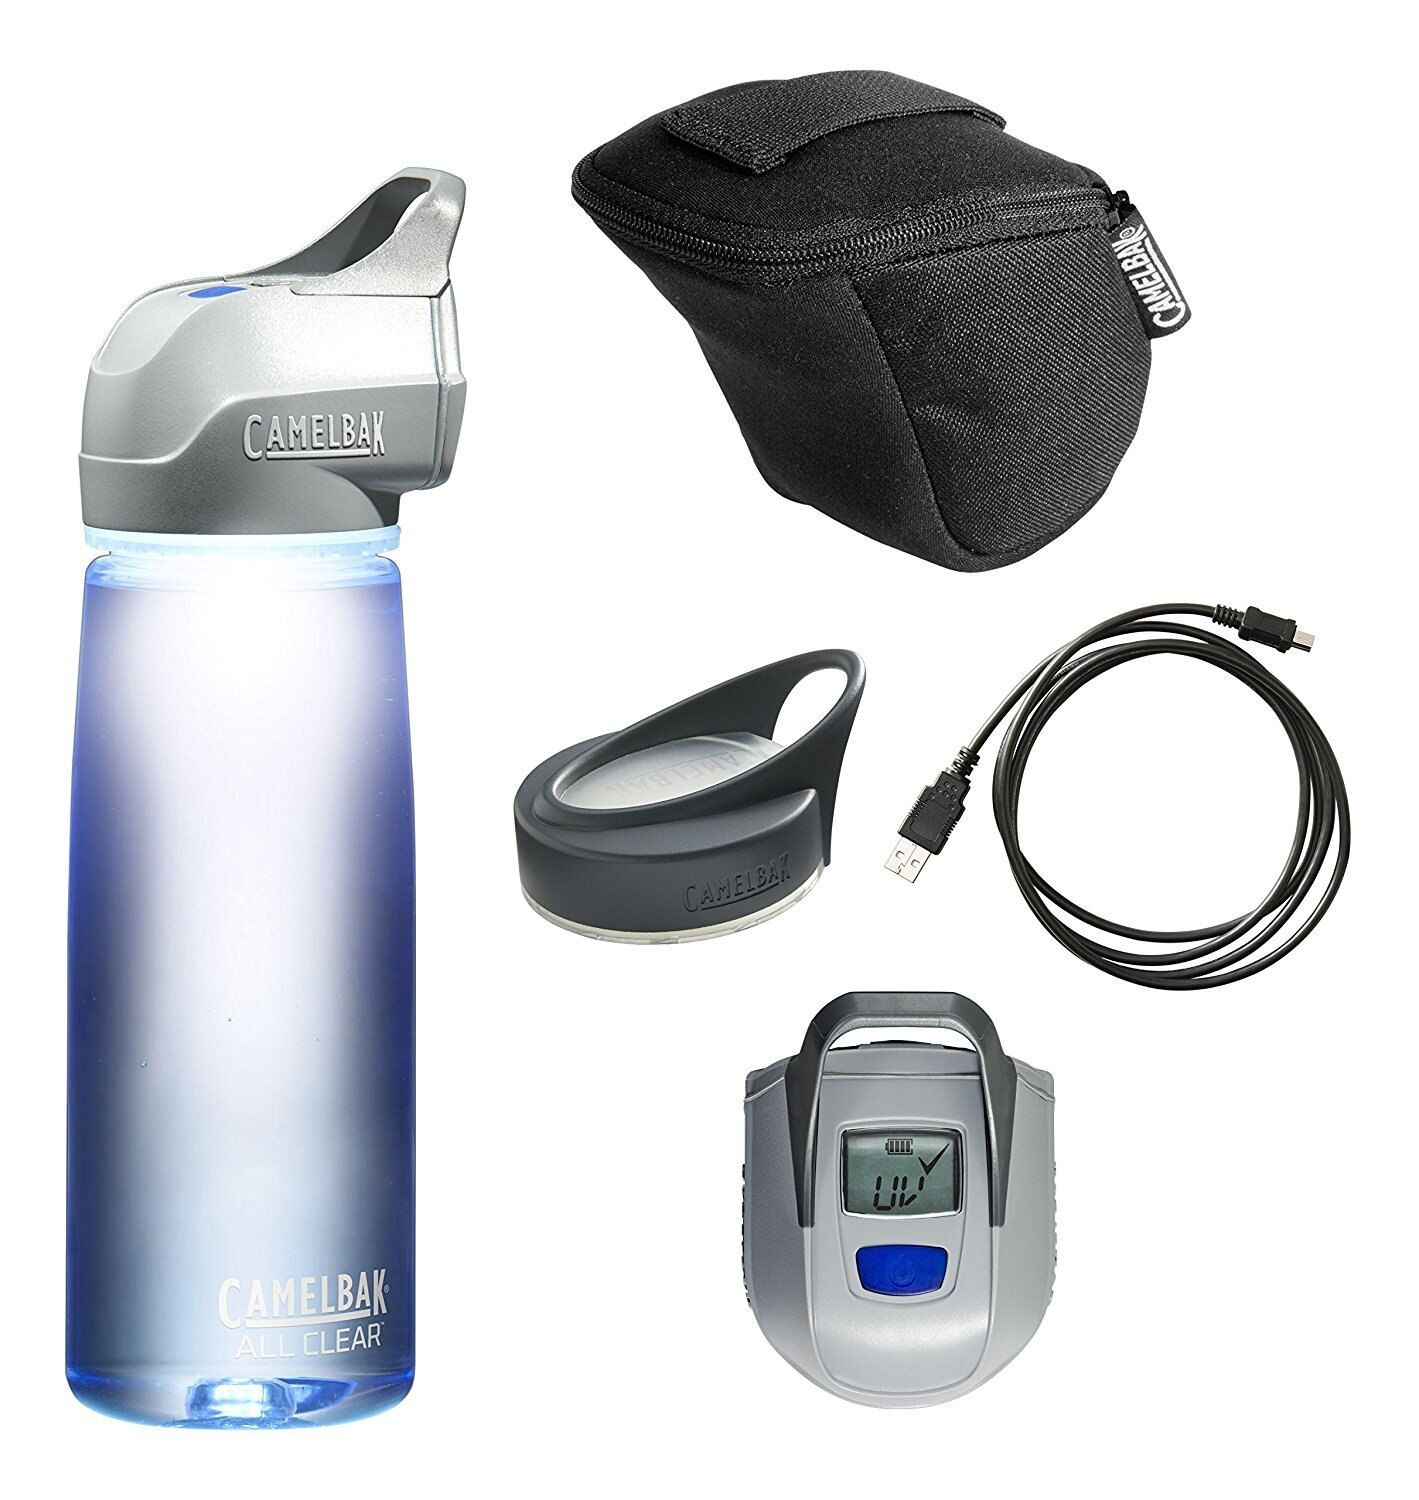 CAMELBAK ALL CLEAR UV PURIFIER UV 0.75 L (NEW, WORKING, COMPLETE SET  )